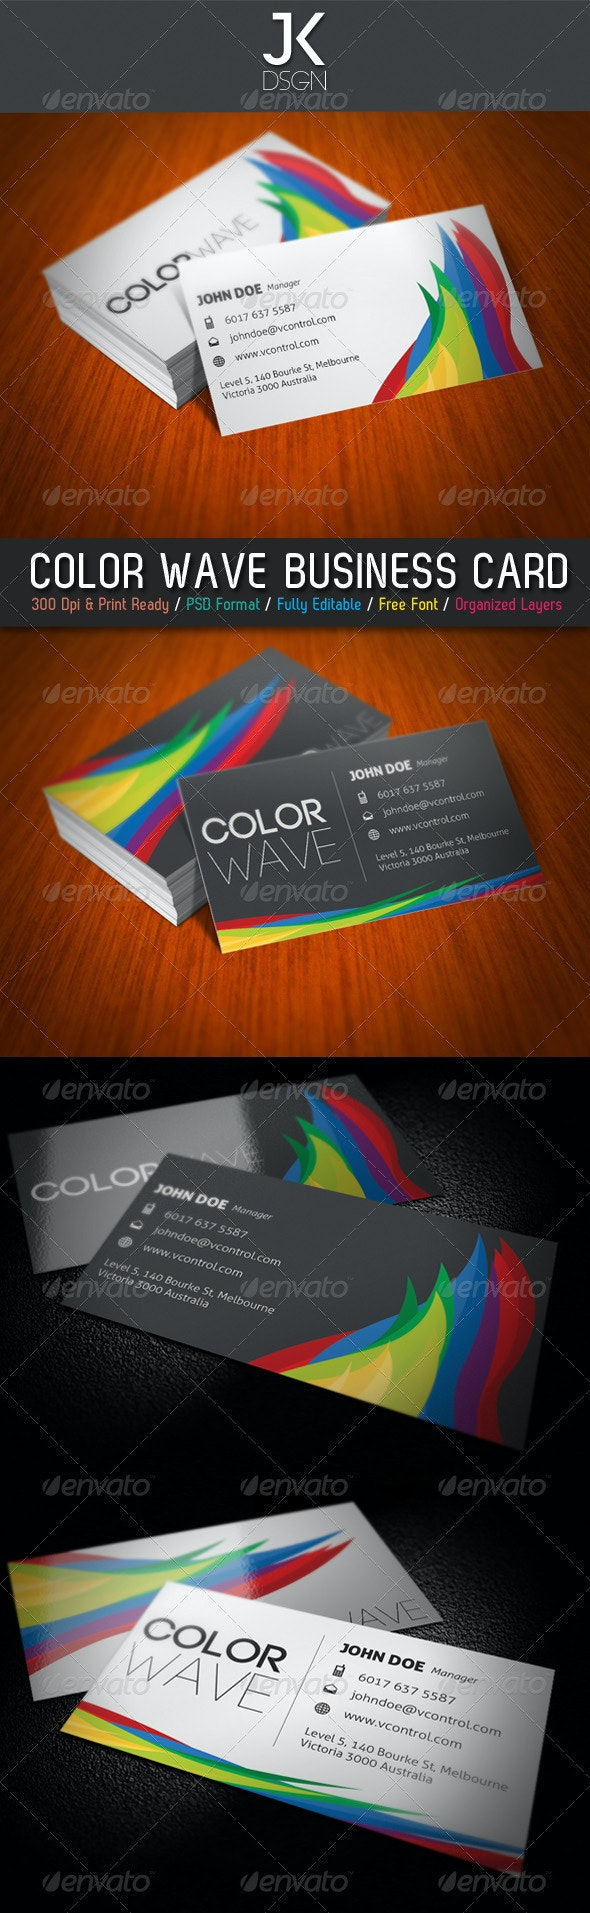 JK Color Wave Business Card - Corporate Business Cards